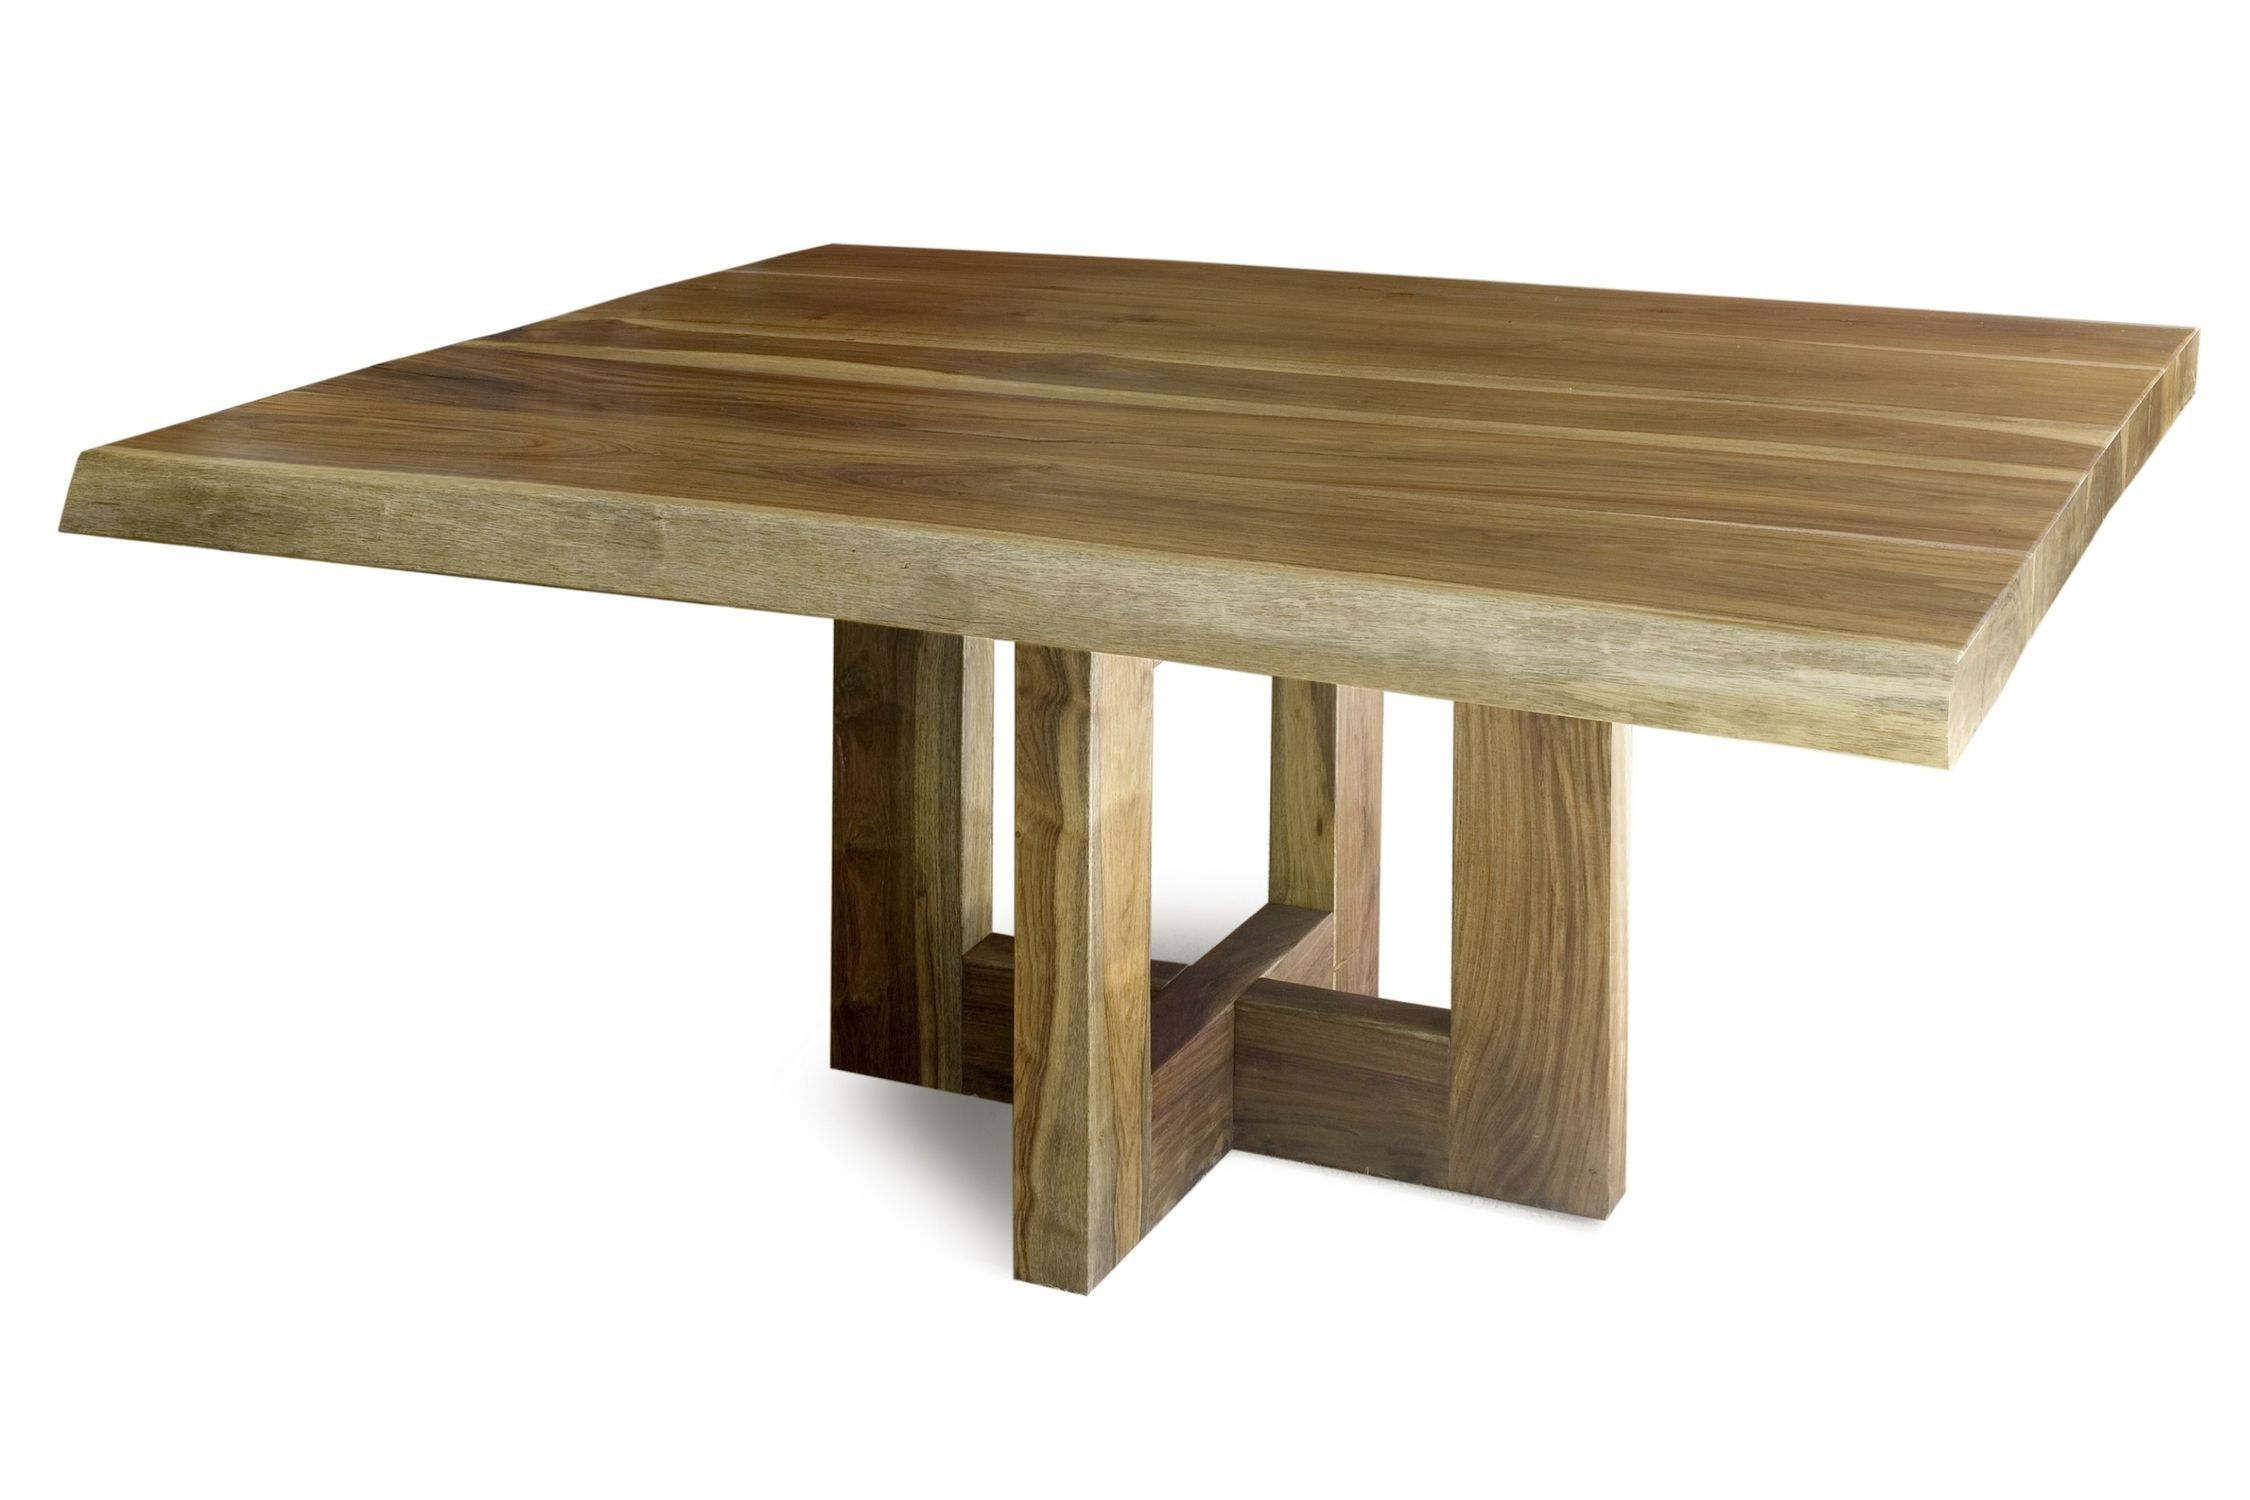 Contemporary Rectangle Unfinished Reclaimed Wood Table For Inspiring Coffee Table With Handmade